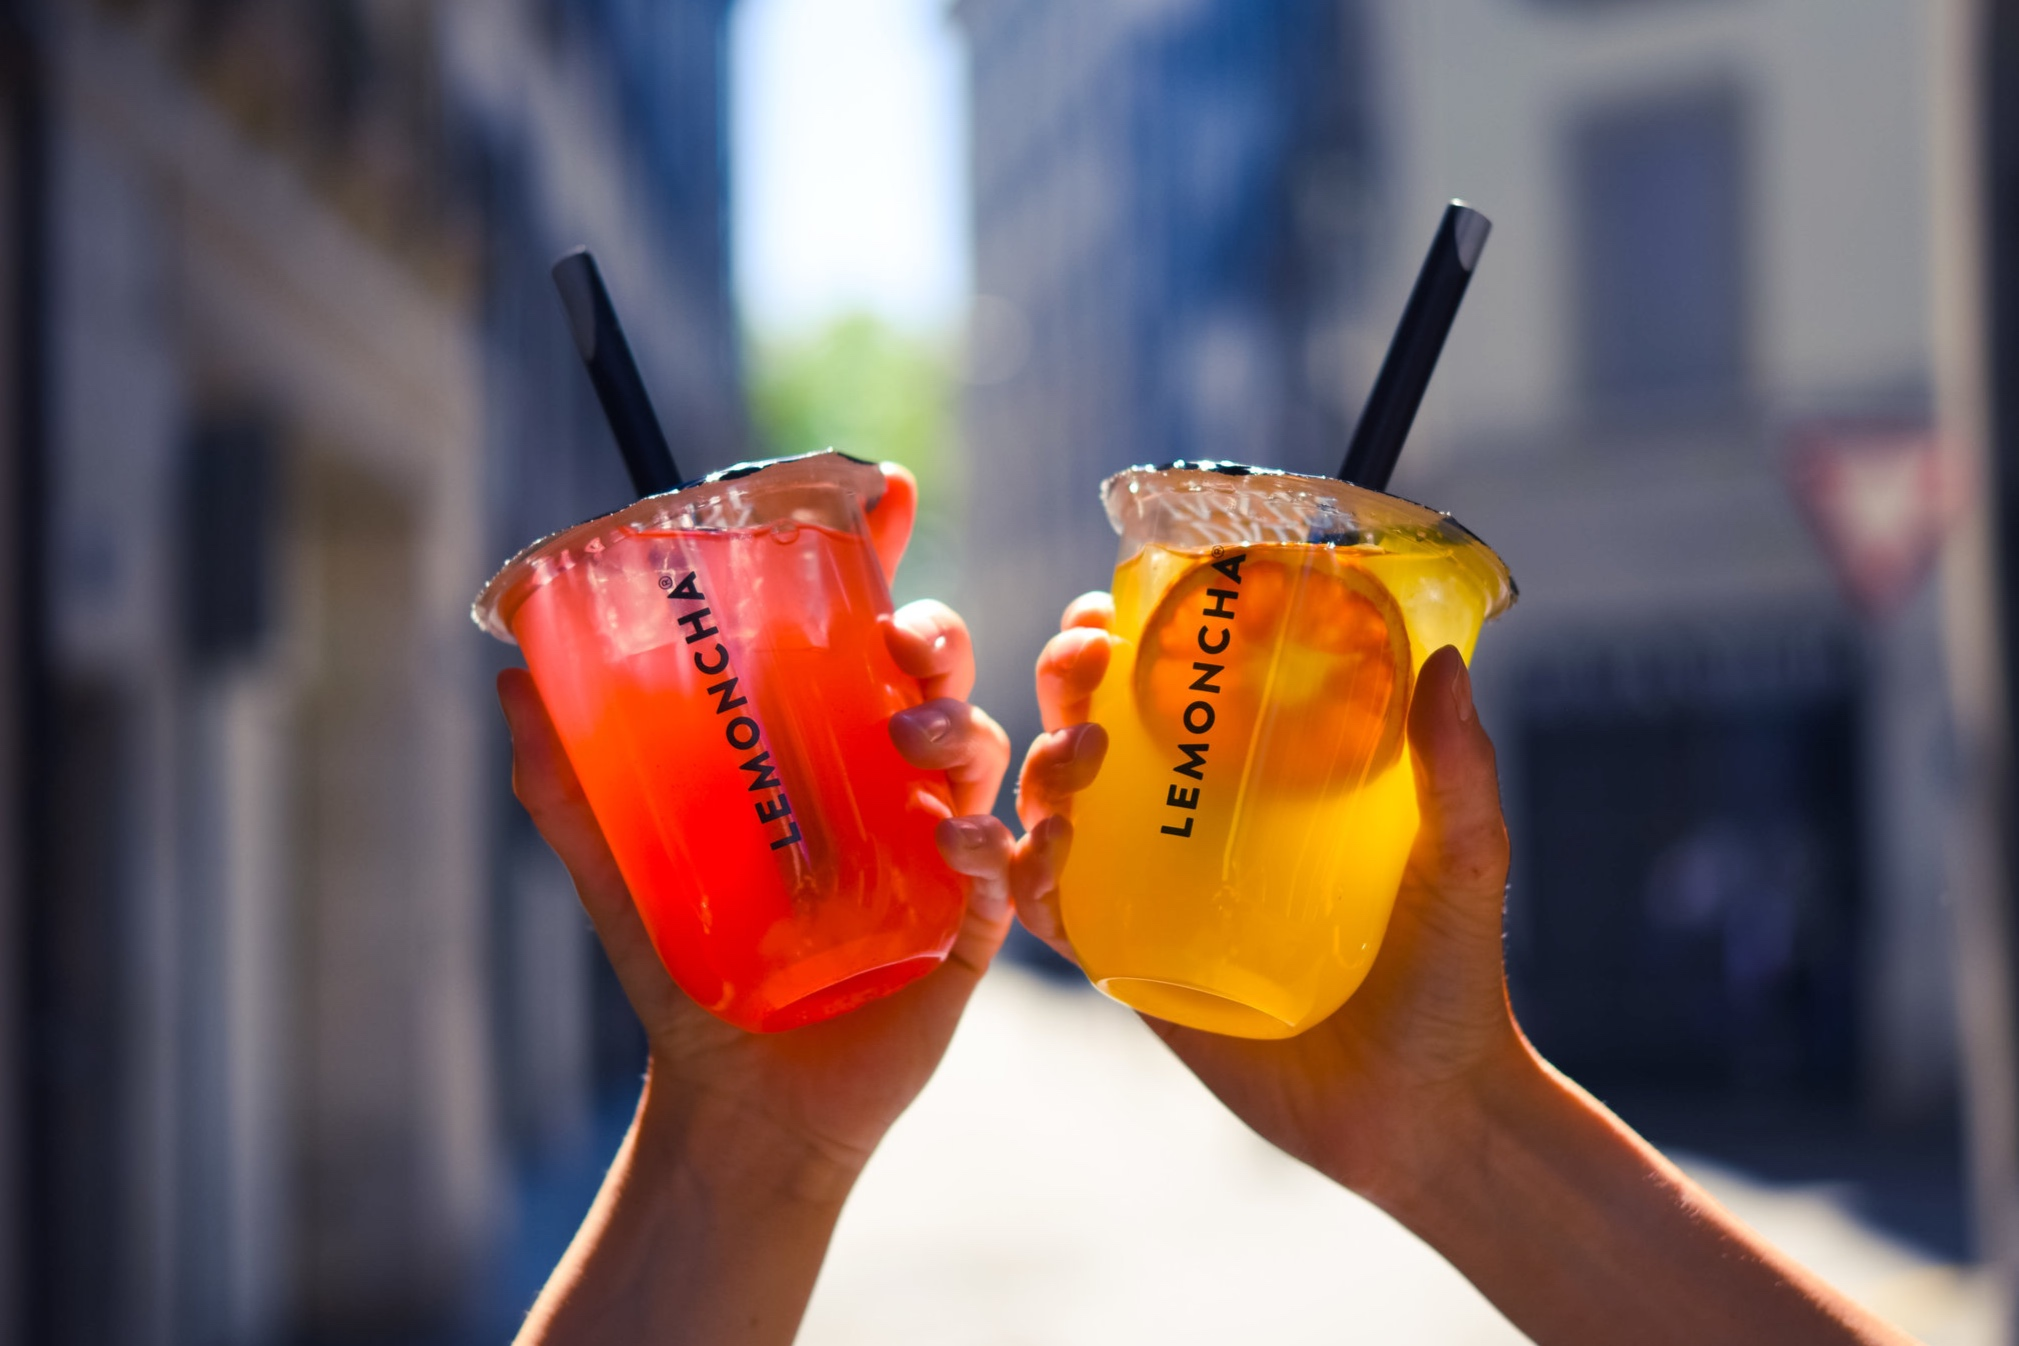 Lemoncha - Red and Yellow iced teas